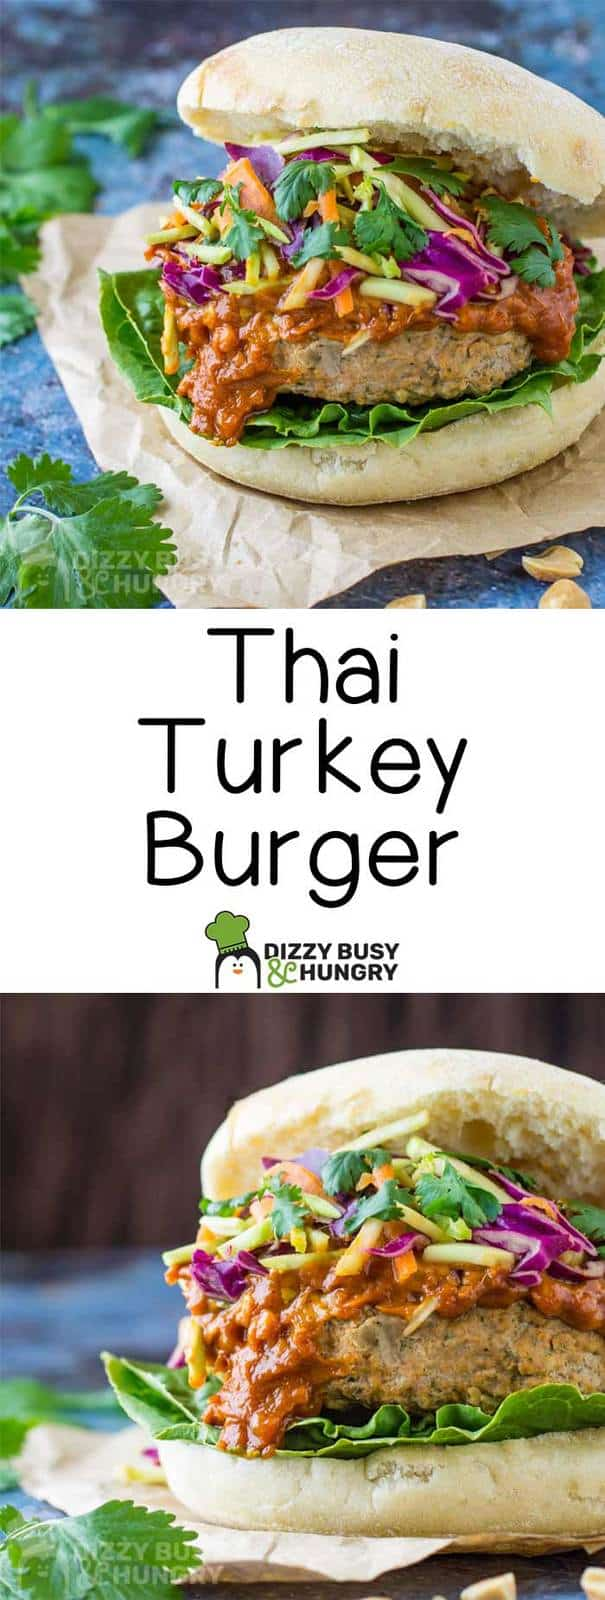 Long pin for homemade burger recipe of Thai turkey burgers